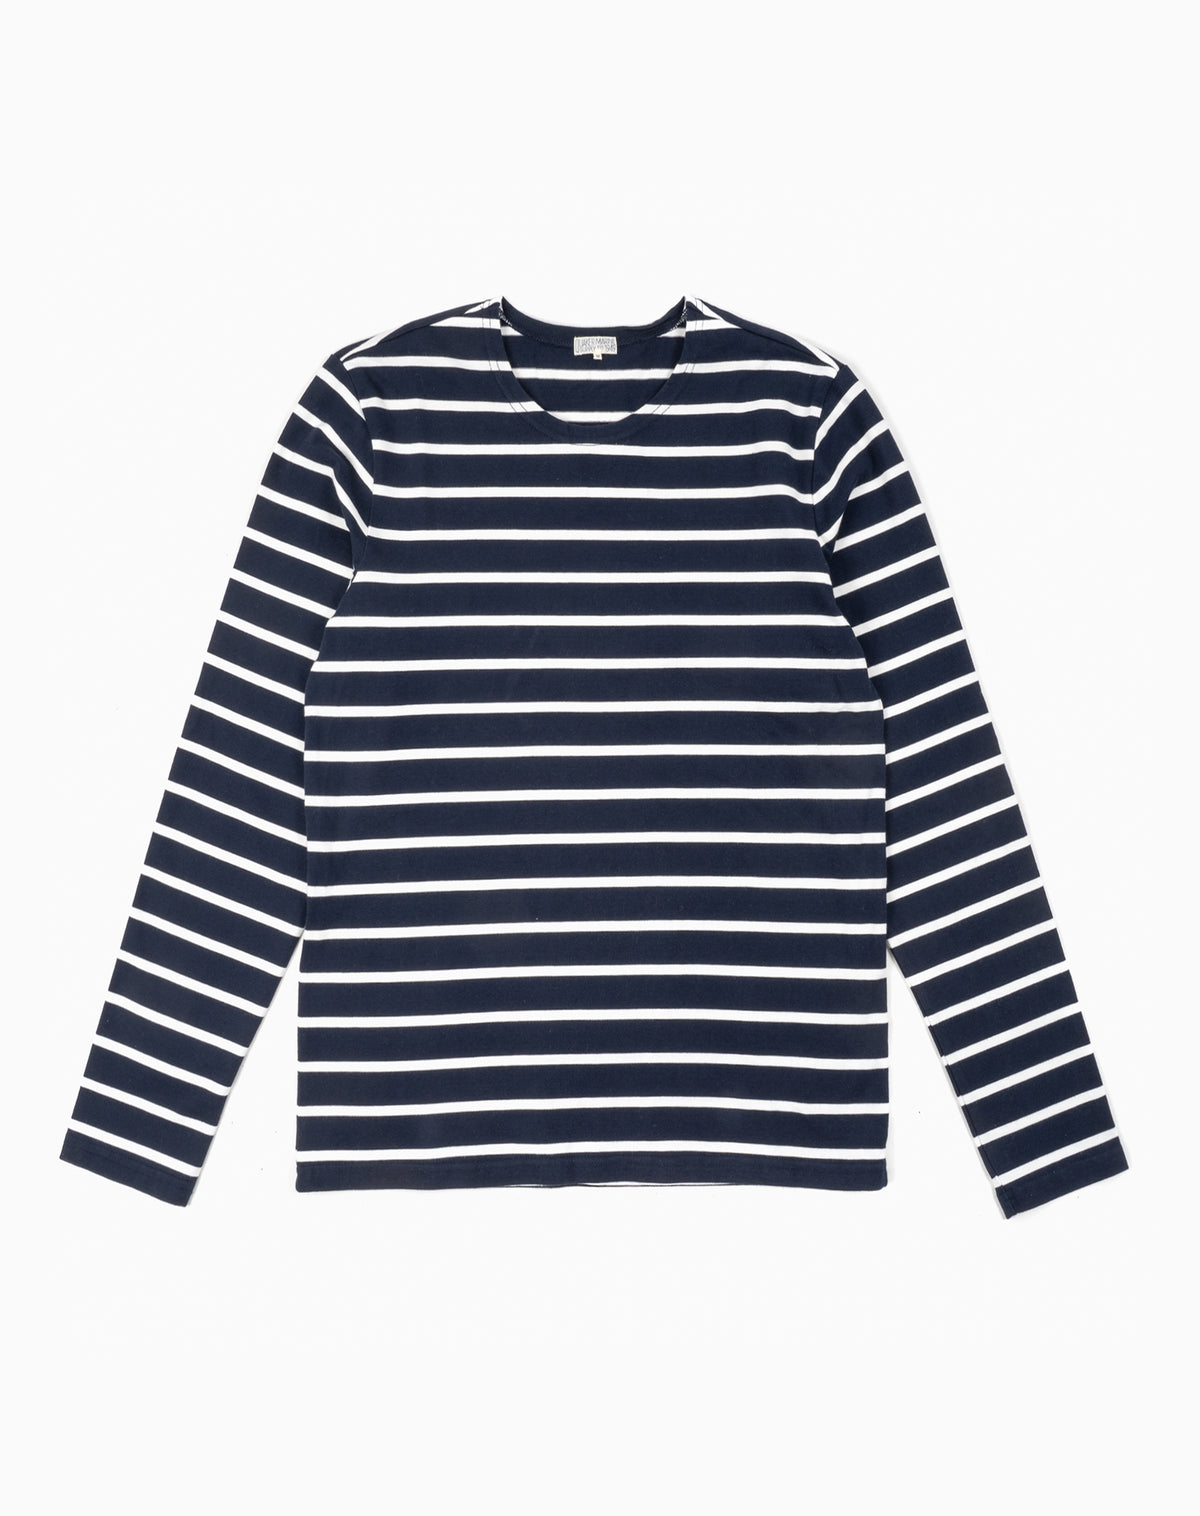 French Sailor in Navy/White